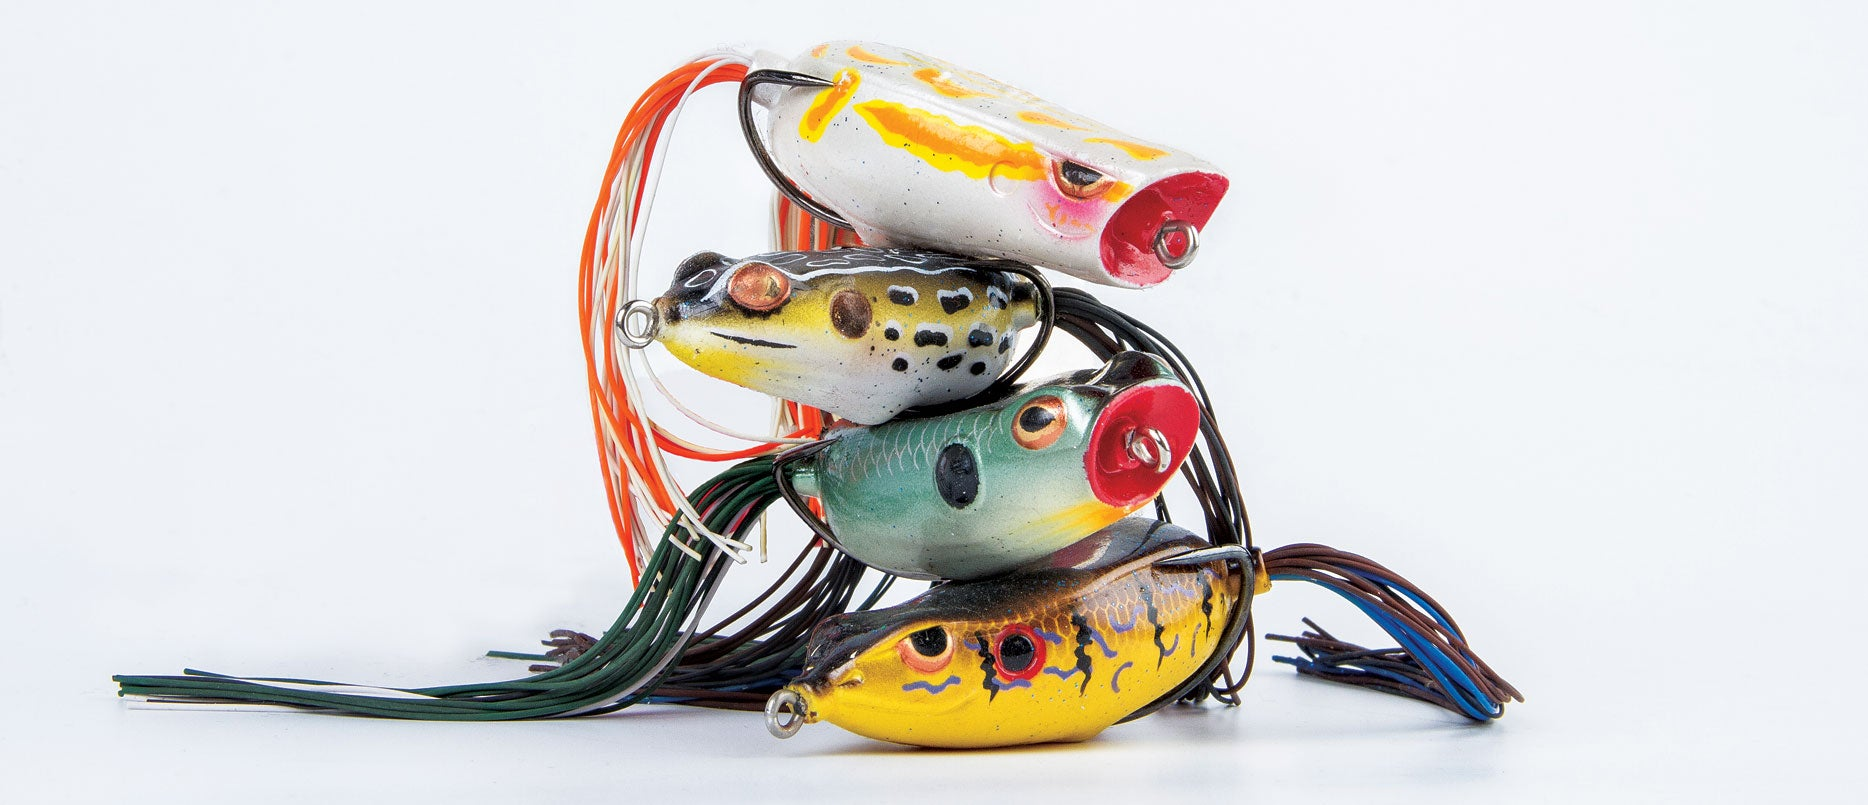 Fishing Tips: Fish a Frog for Late-Summer Bass